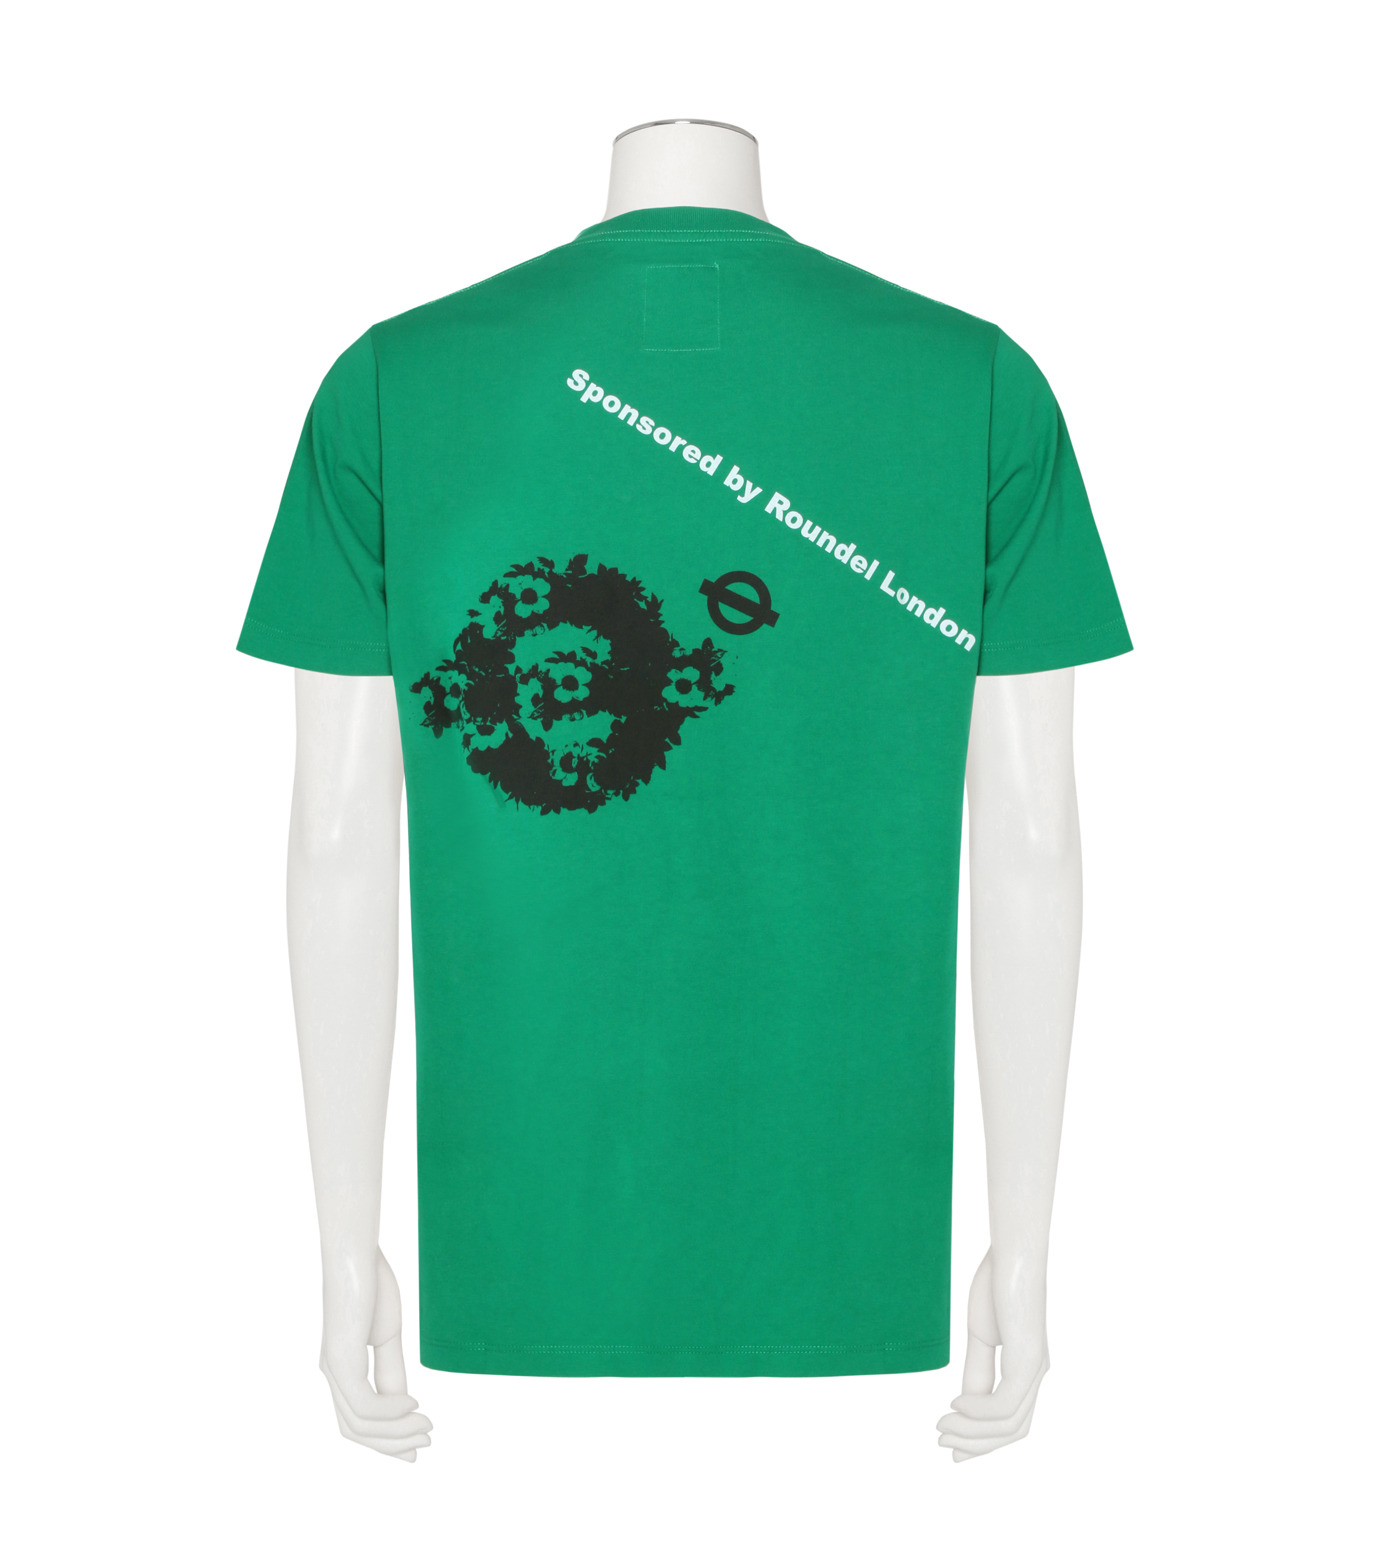 ROUNDEL LONDON(ラウンデル ロンドン)のTest Print T-GREEN(カットソー/cut and sewn)-FMRLAM10008-22 拡大詳細画像2